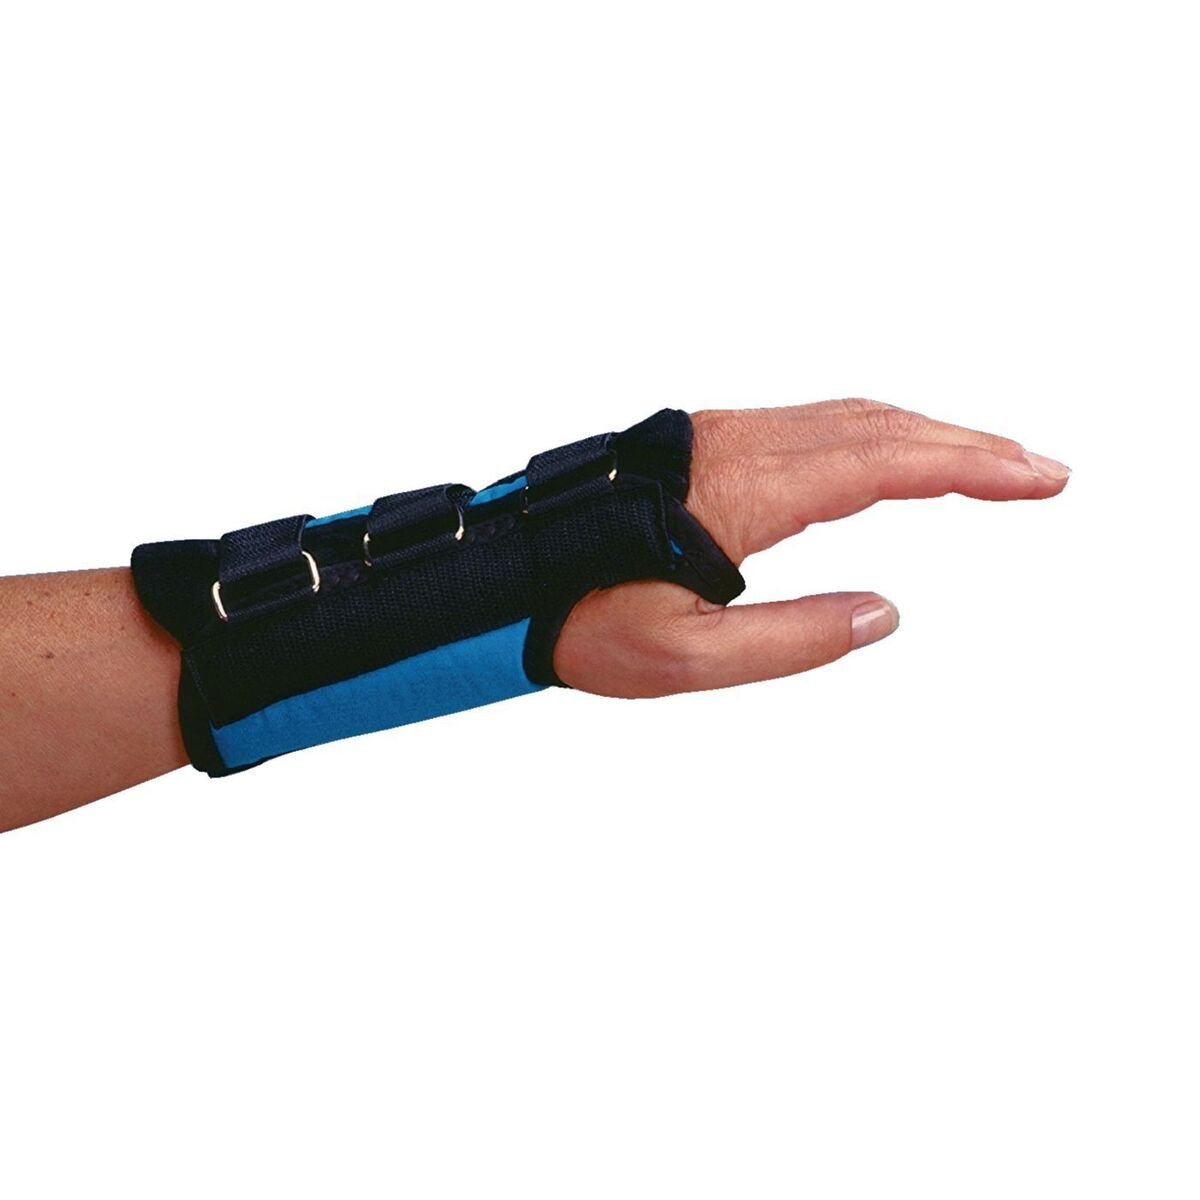 Rolyan D-Ring Left Wrist Brace, Size Medium Fits Wrists 6.75''-7.5'', 7'' Regular Length Support, Teal Brace with Straps and D-Ring Connectors to Secure and Stabilize Hands and Wrists